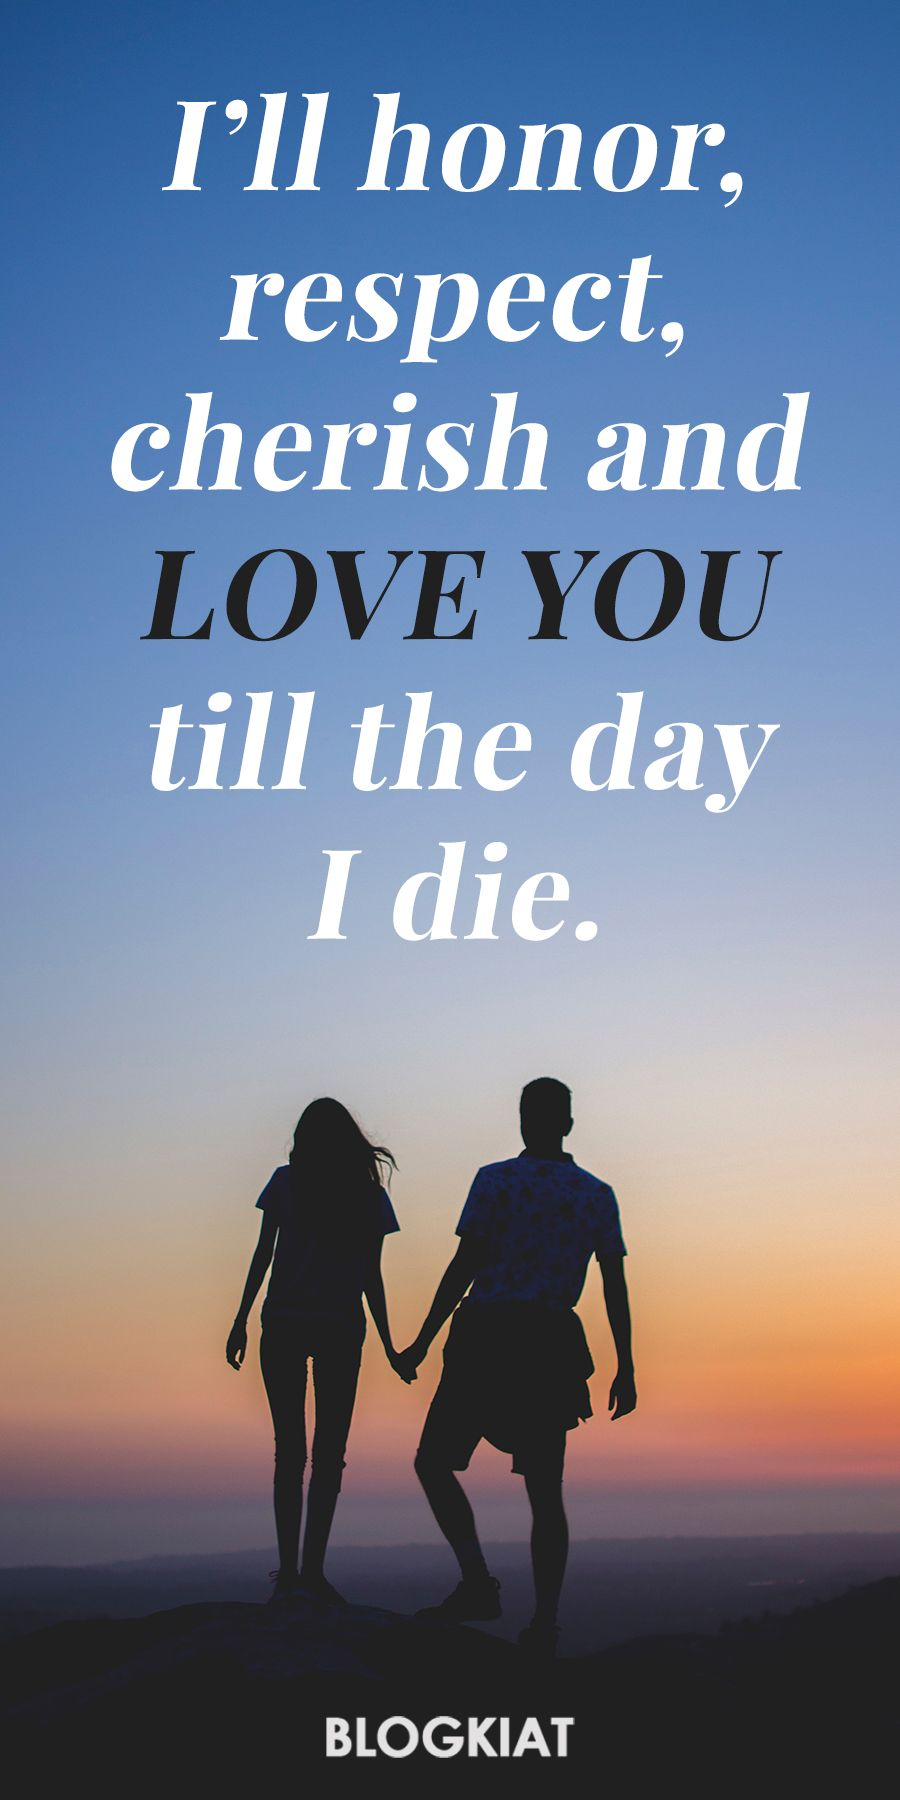 50+ Sweet, Cute & Romantic Love Quotes for Her | Cute Love